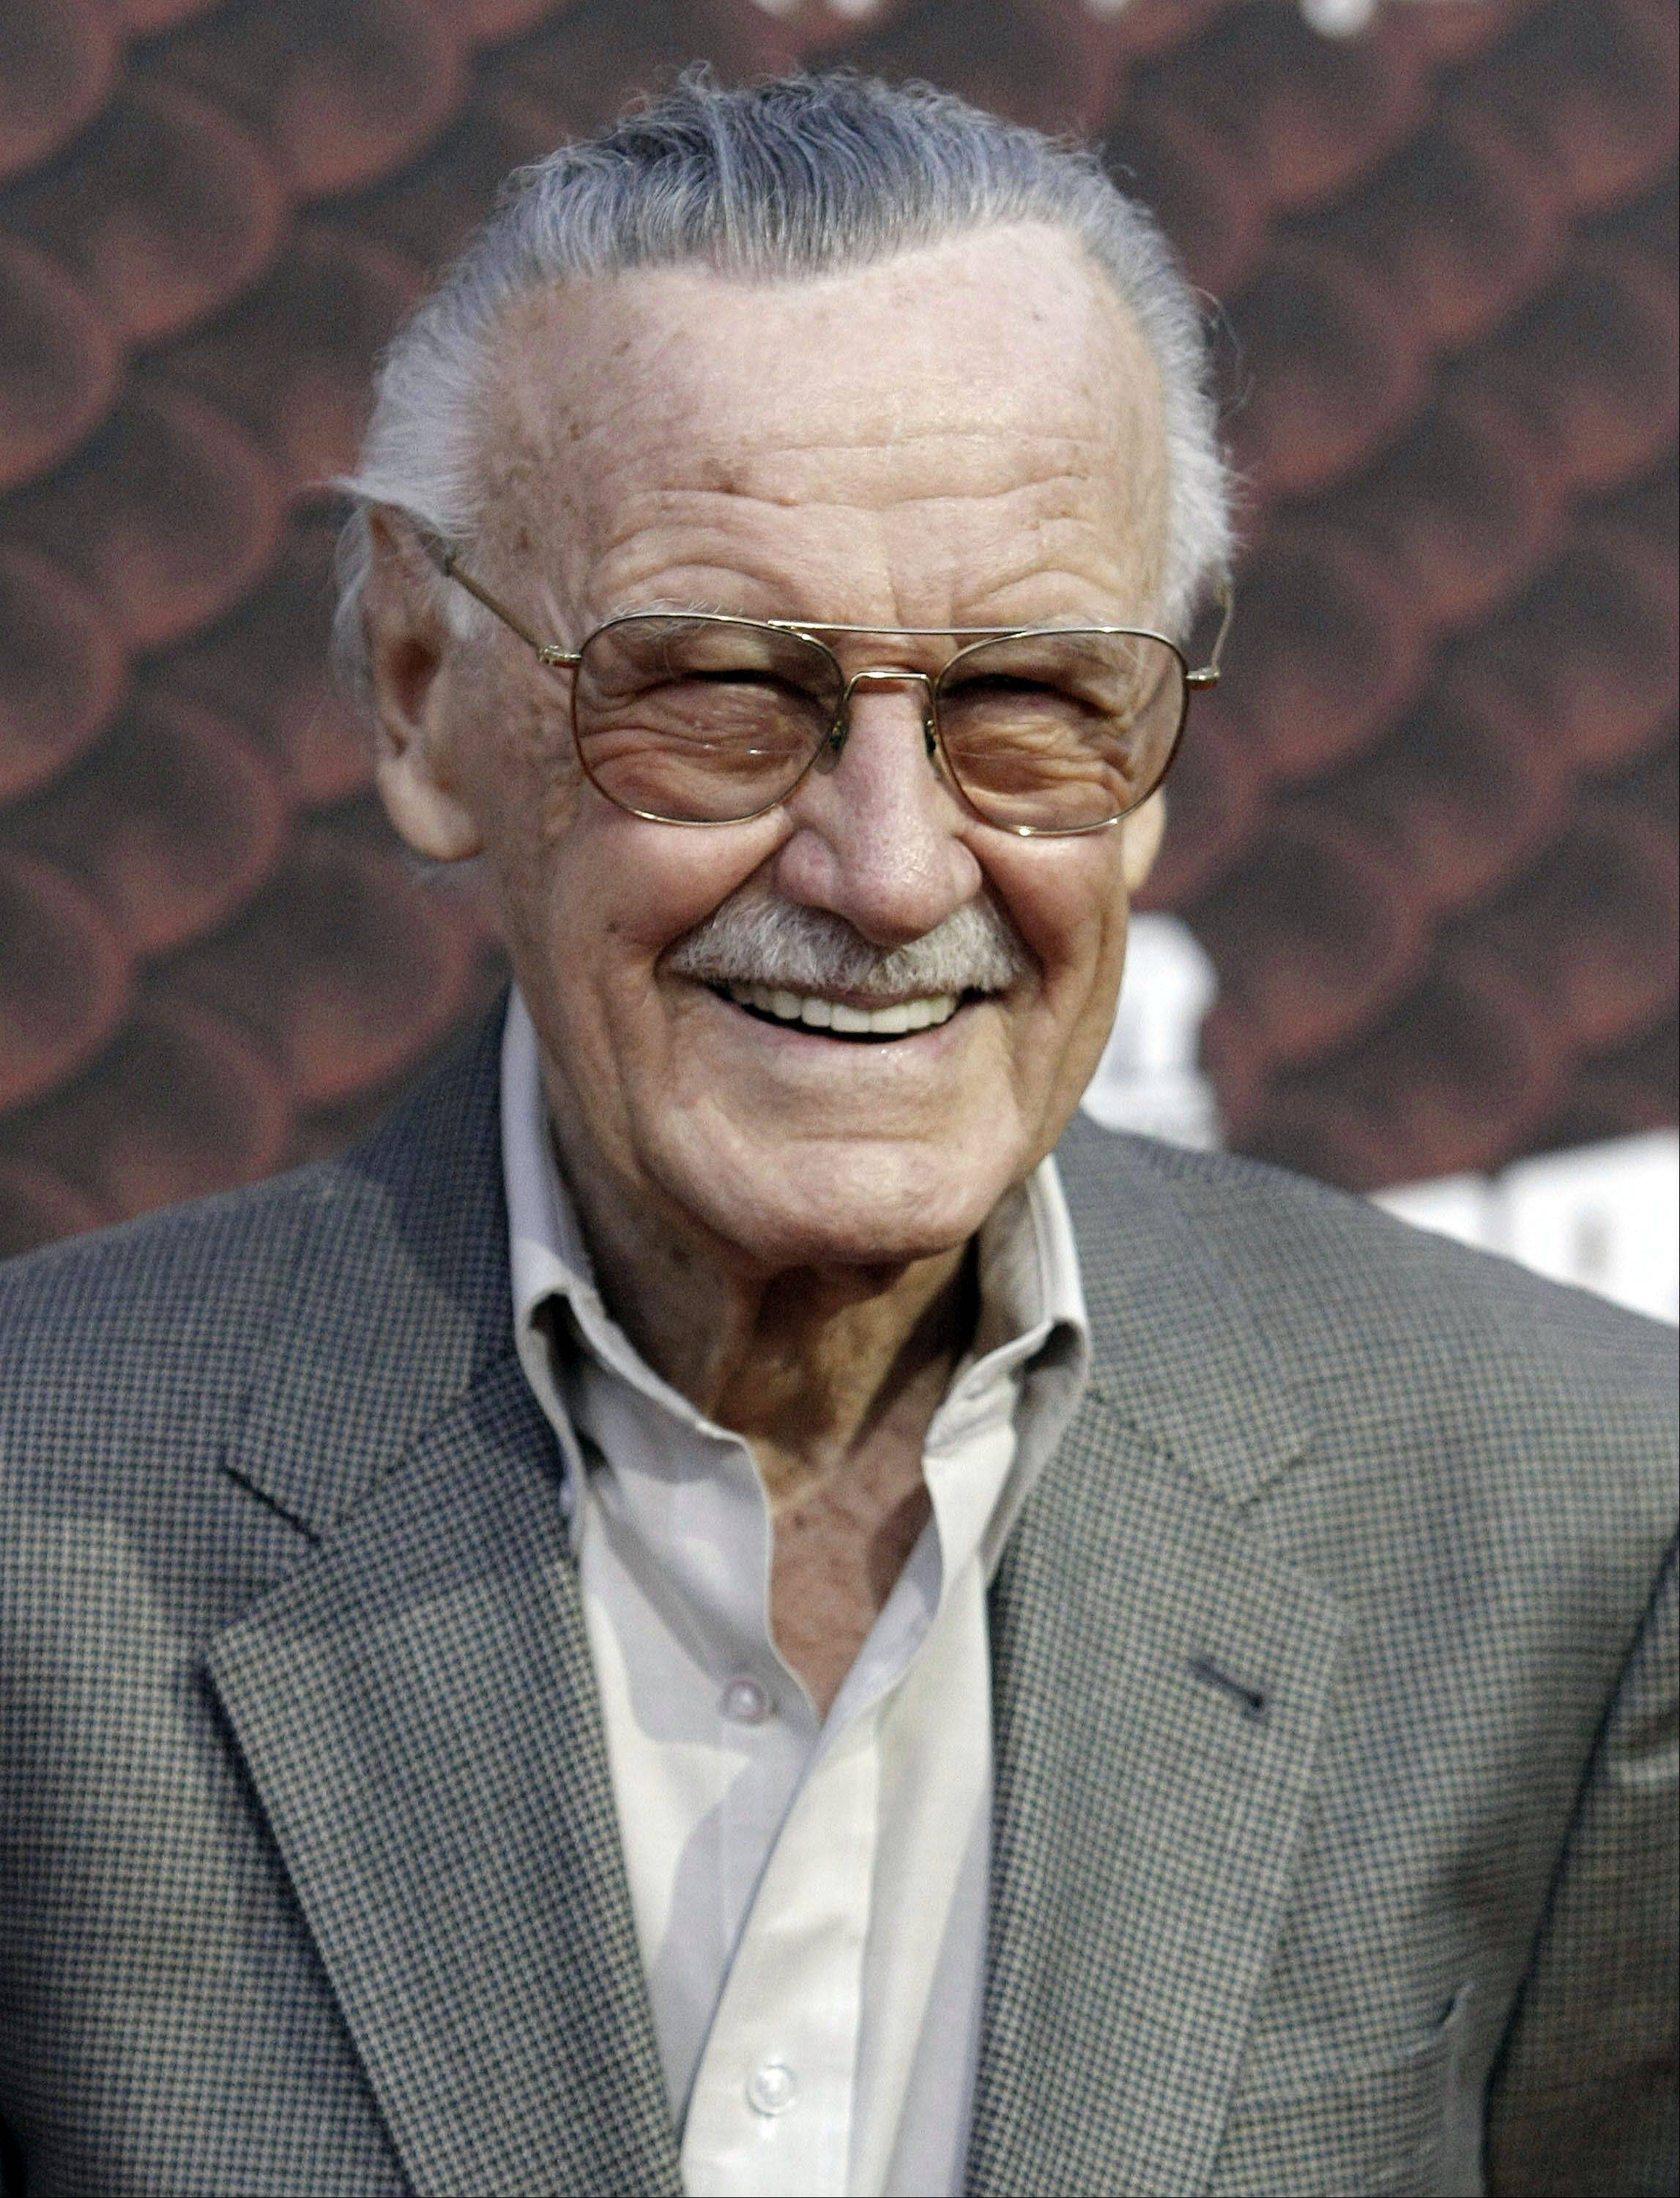 The legendary Stan Lee, one of the architects of Marvel Comics, will appear at the Chicago Comic Con.